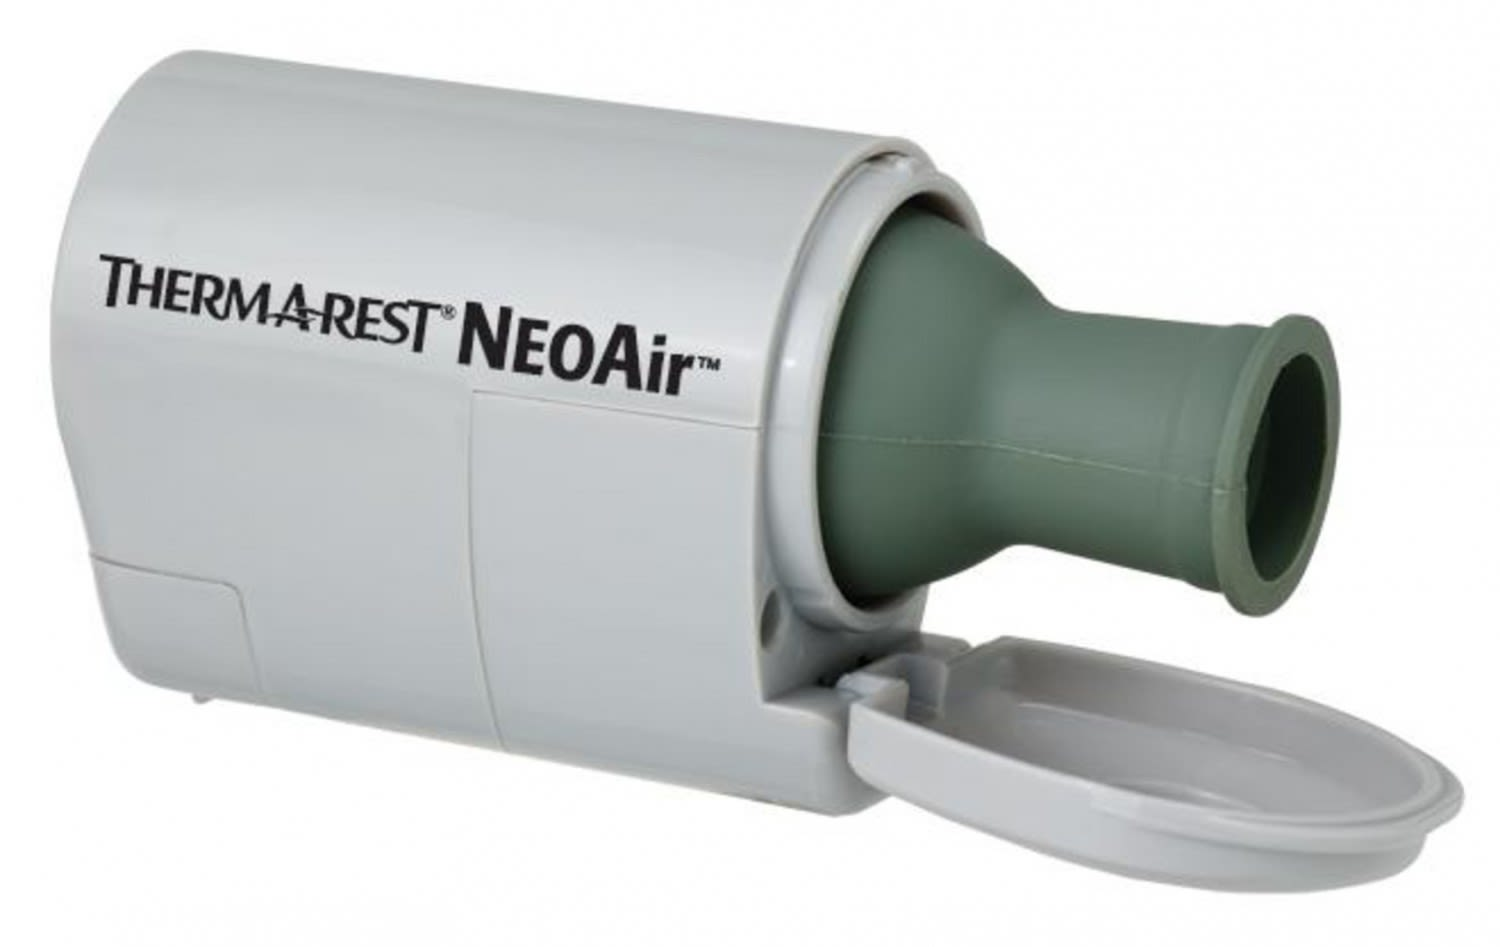 Therm-a-Rest Neoair Minipumpe Grau, One Size -Farbe Gray, One Size